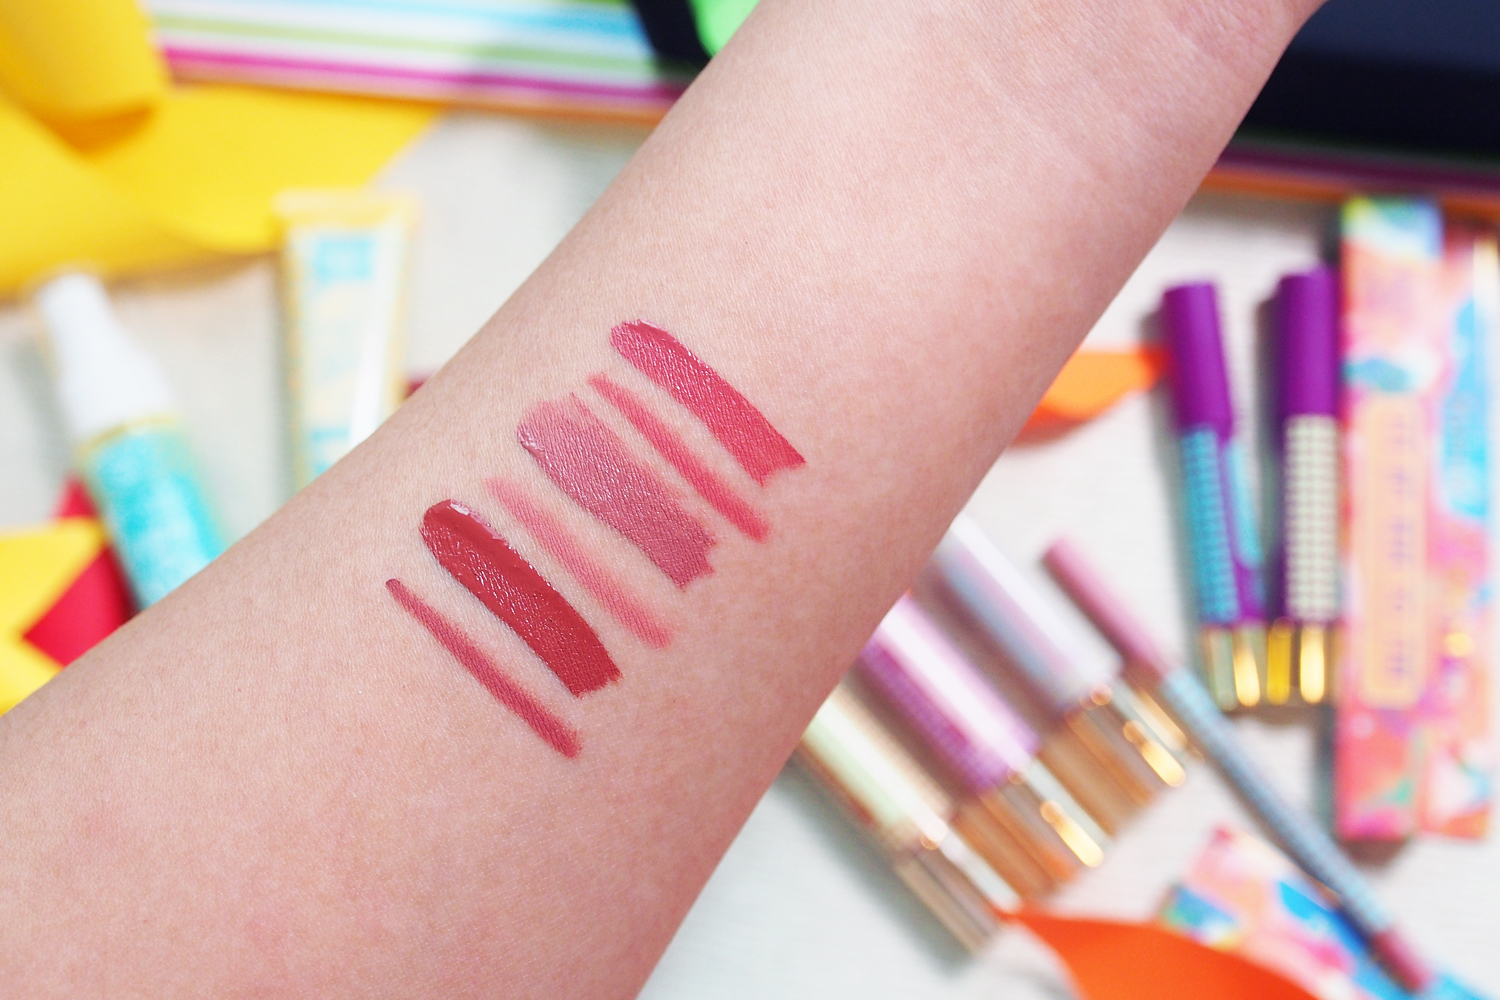 Left to right: Dance All Day, The Morning After, and Honeymoon Glow